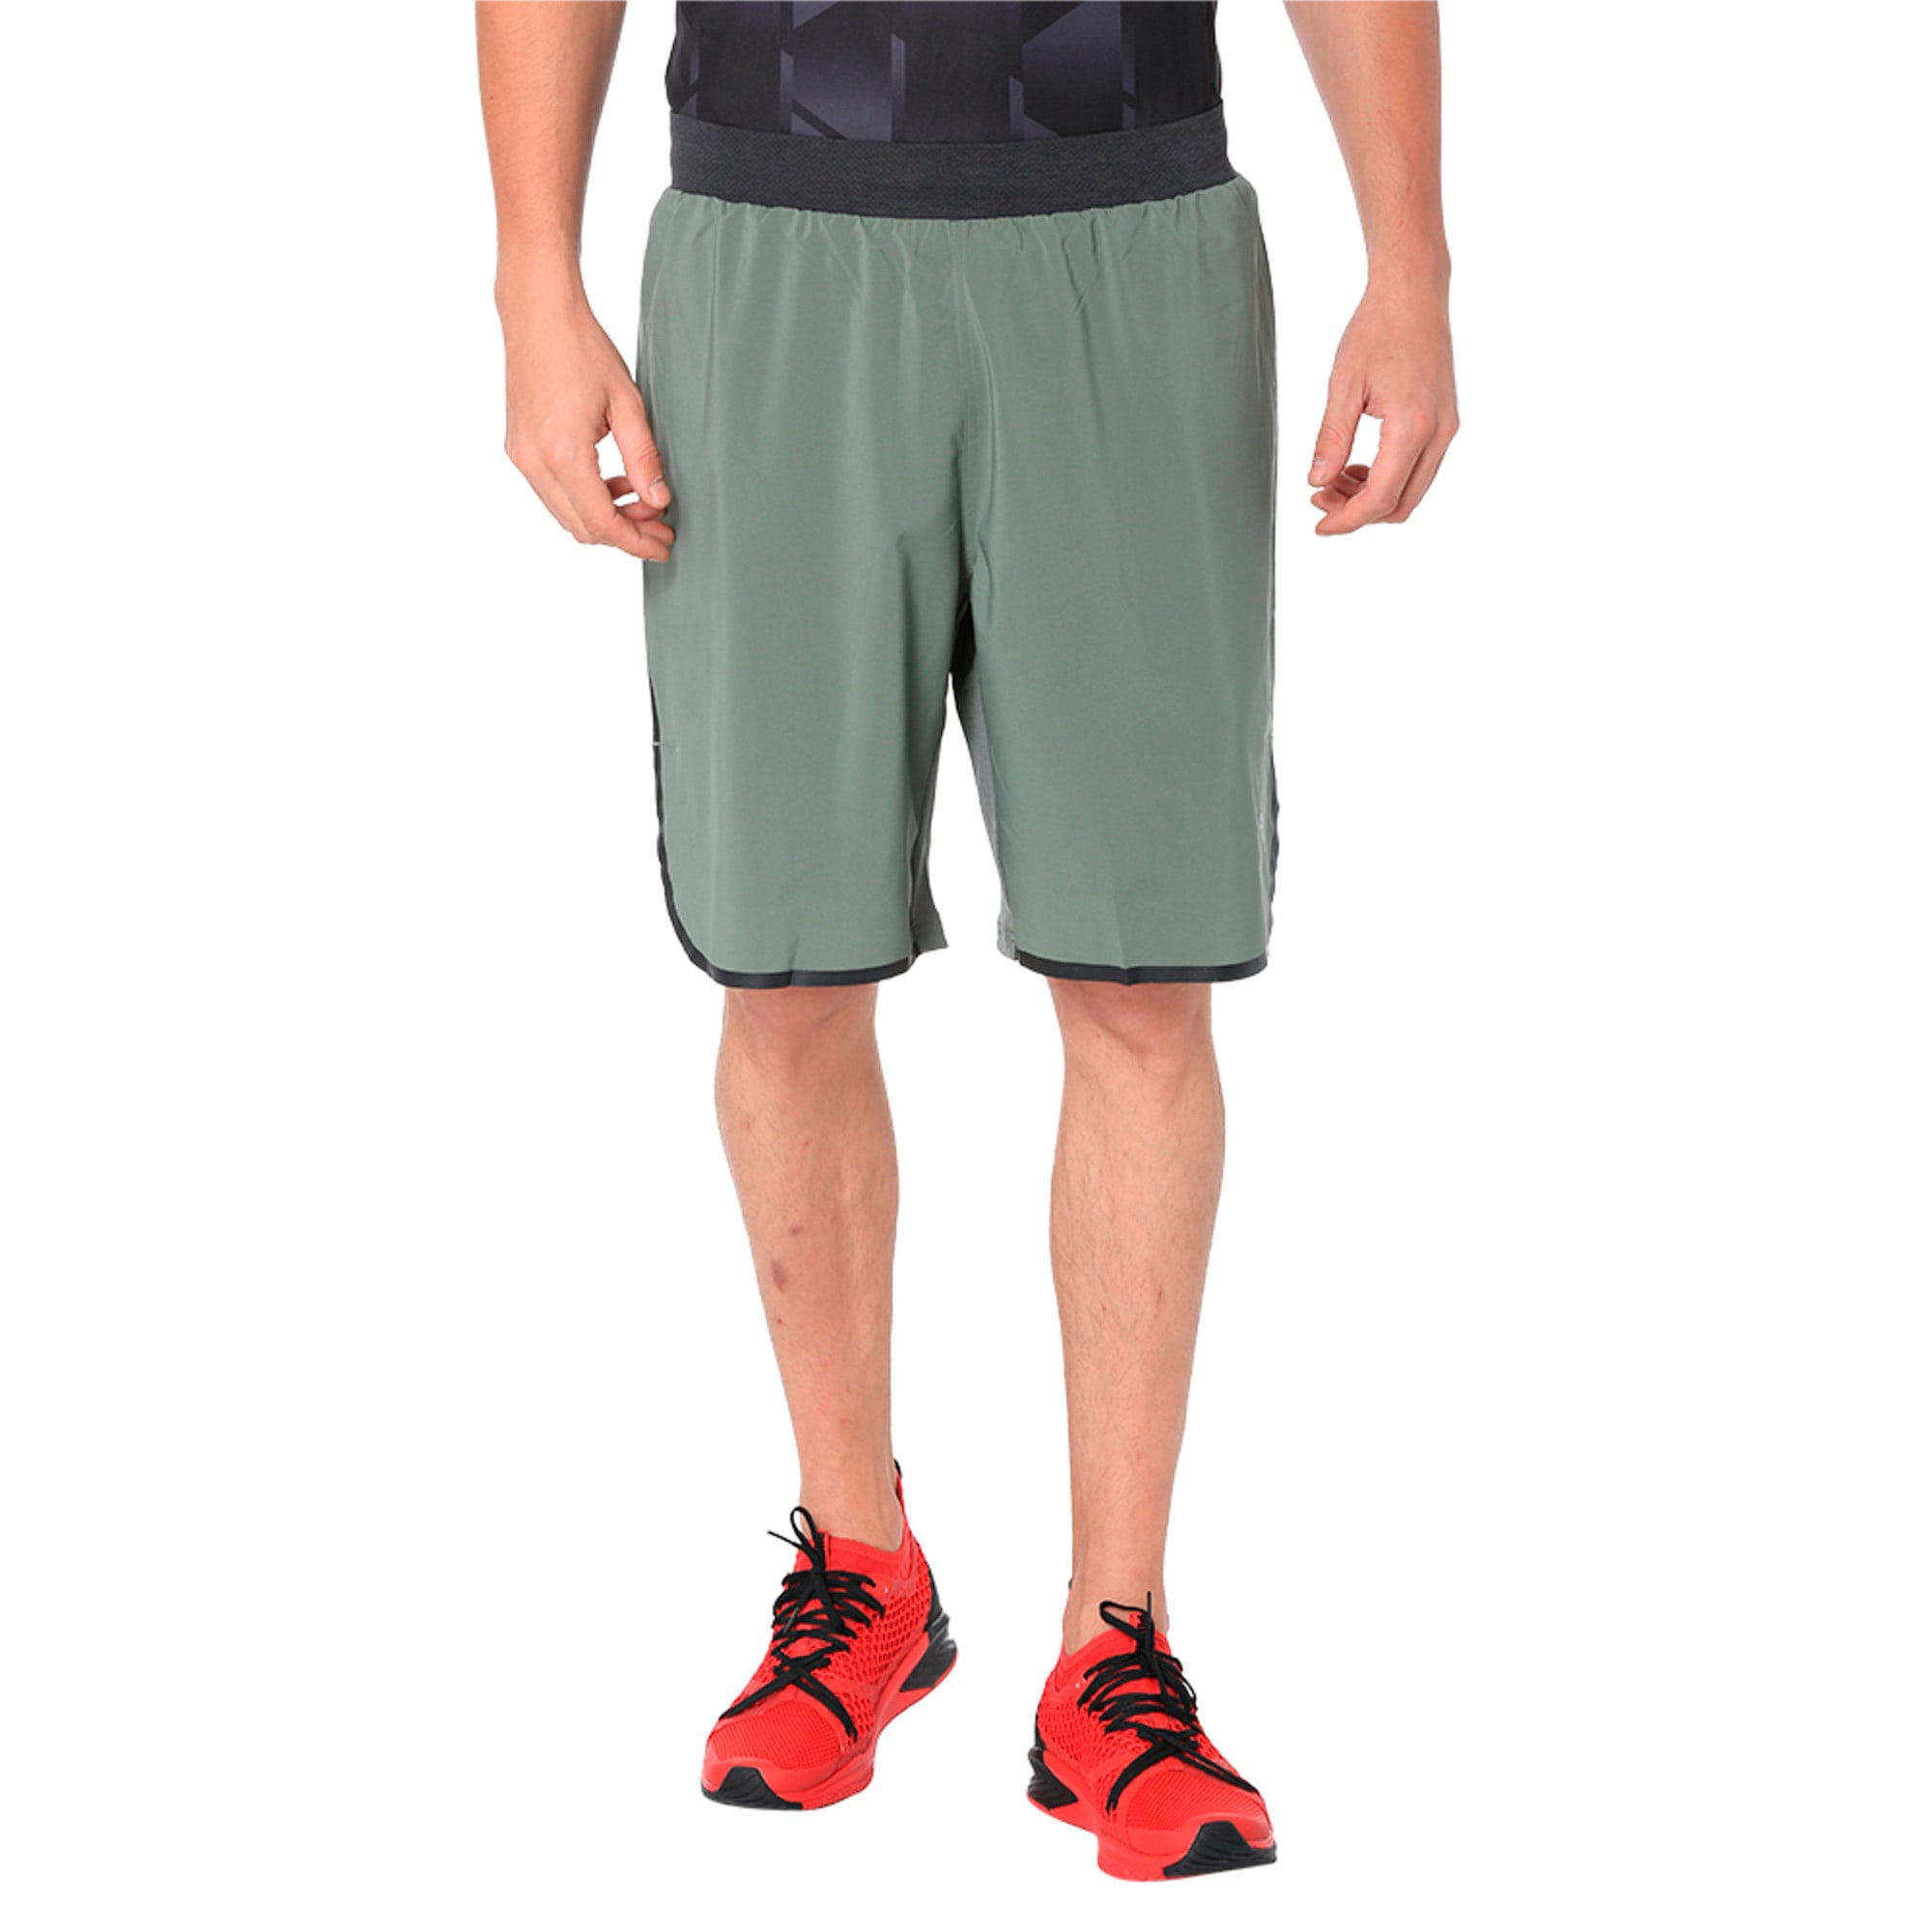 Thumbnail 1 of Energy Laser Shorts, Castor Gray-Dark GrayHeather, medium-IND